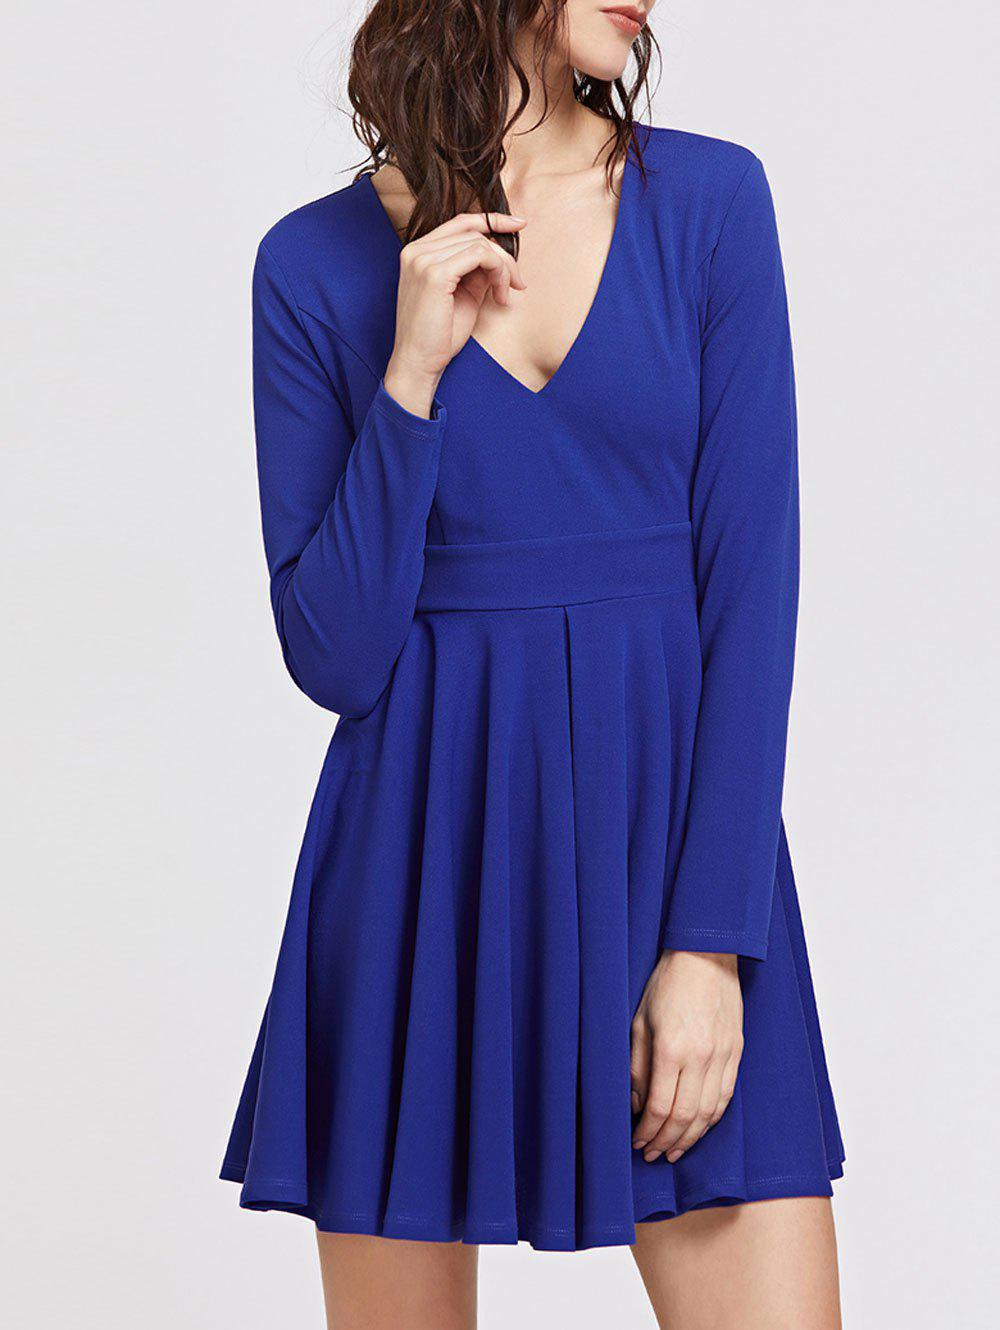 V Neck Long Sleeve Mini Skater Dress - BLUE L